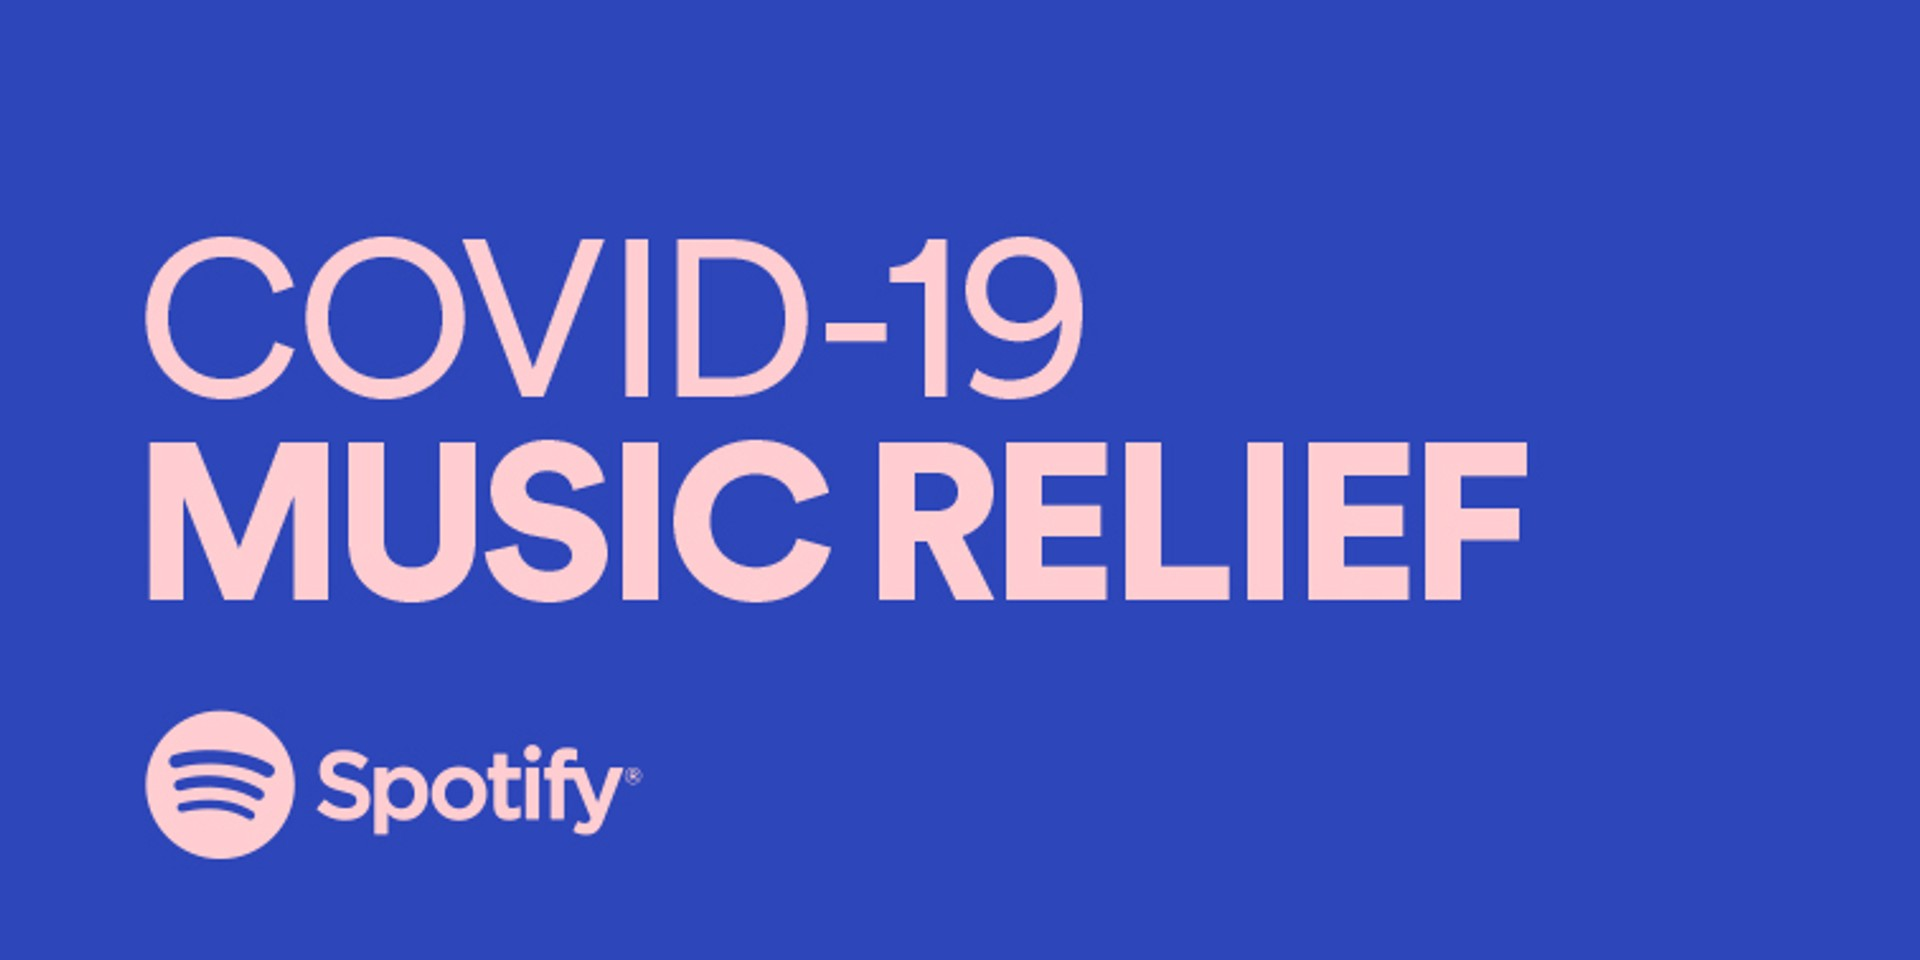 Spotify rolls out initiatives to support the music community in COVID-19 crisis